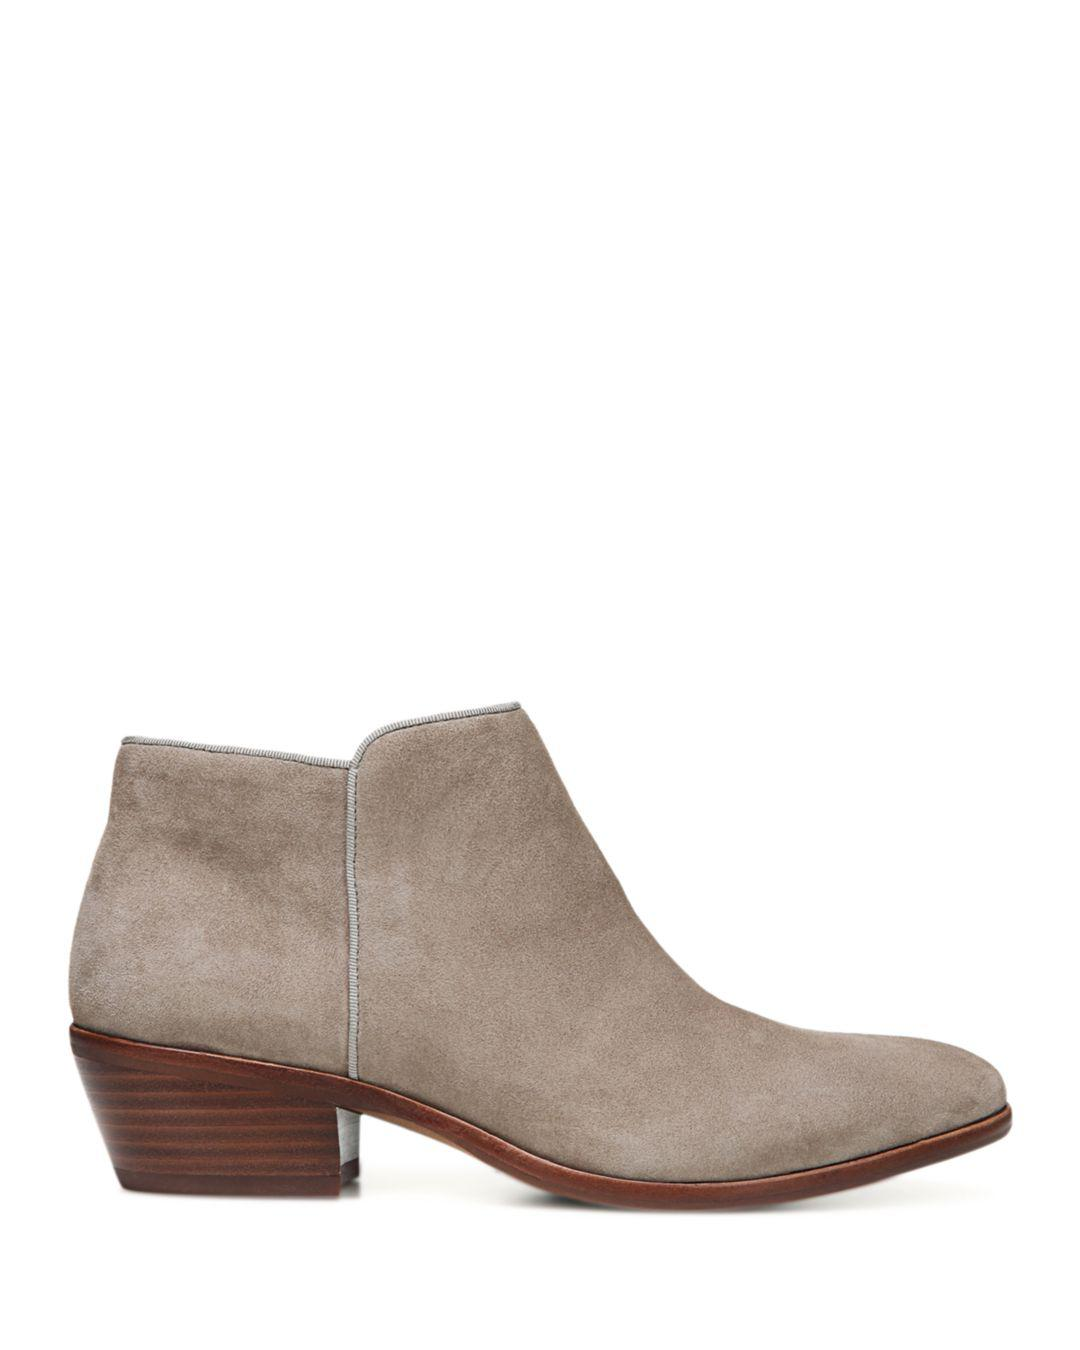 339c872ab3ab19 Sam Edelman Petty Ankle Boots in Brown - Lyst